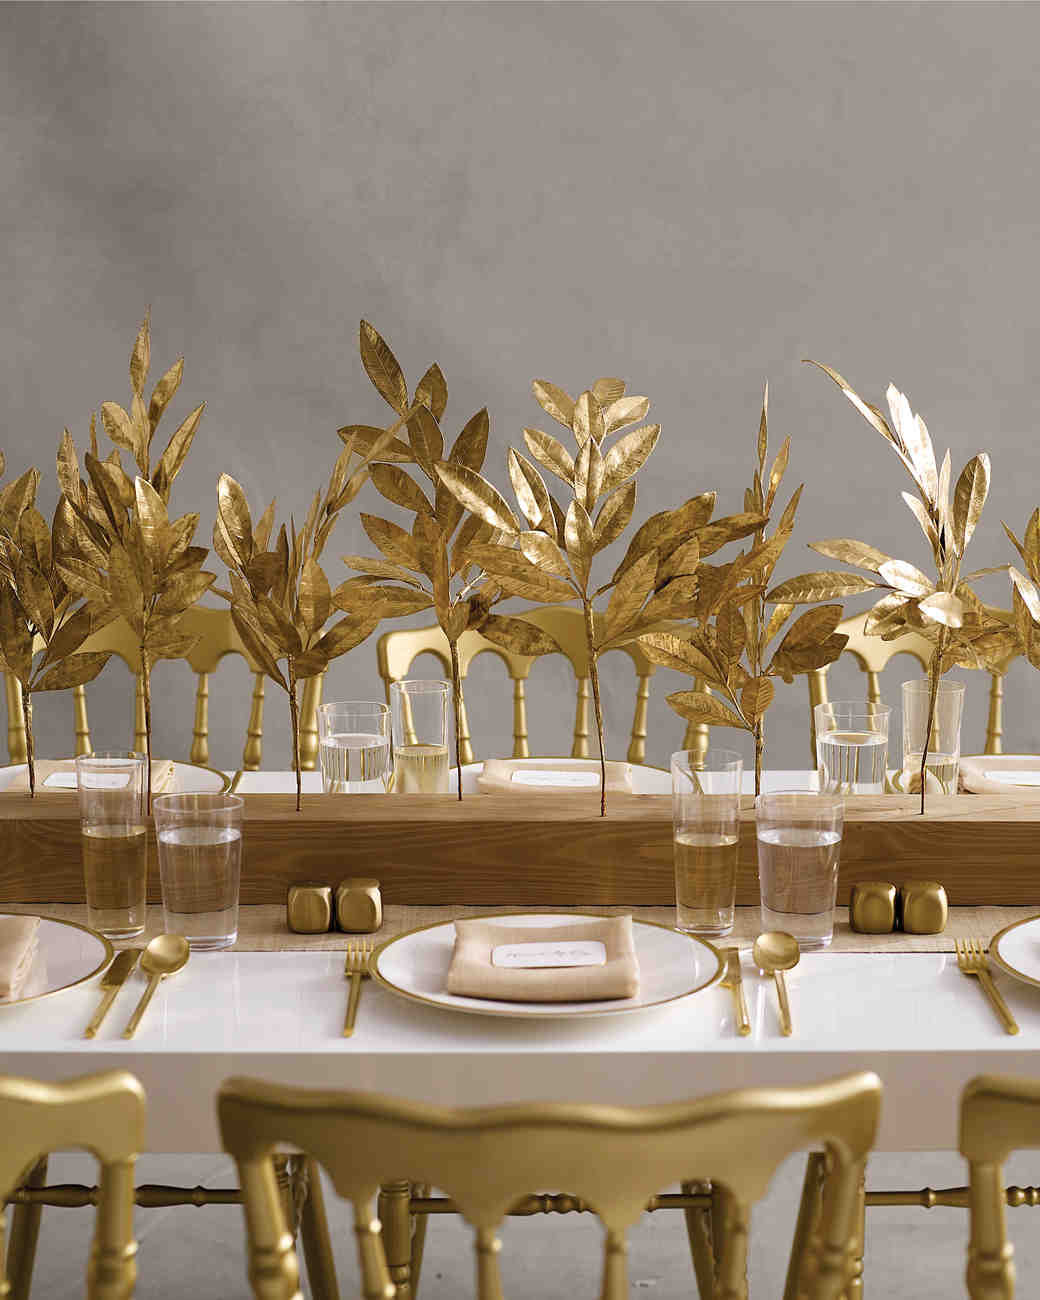 Gold Wedding Decorations: 25 Non-Floral Wedding Centerpiece Ideas